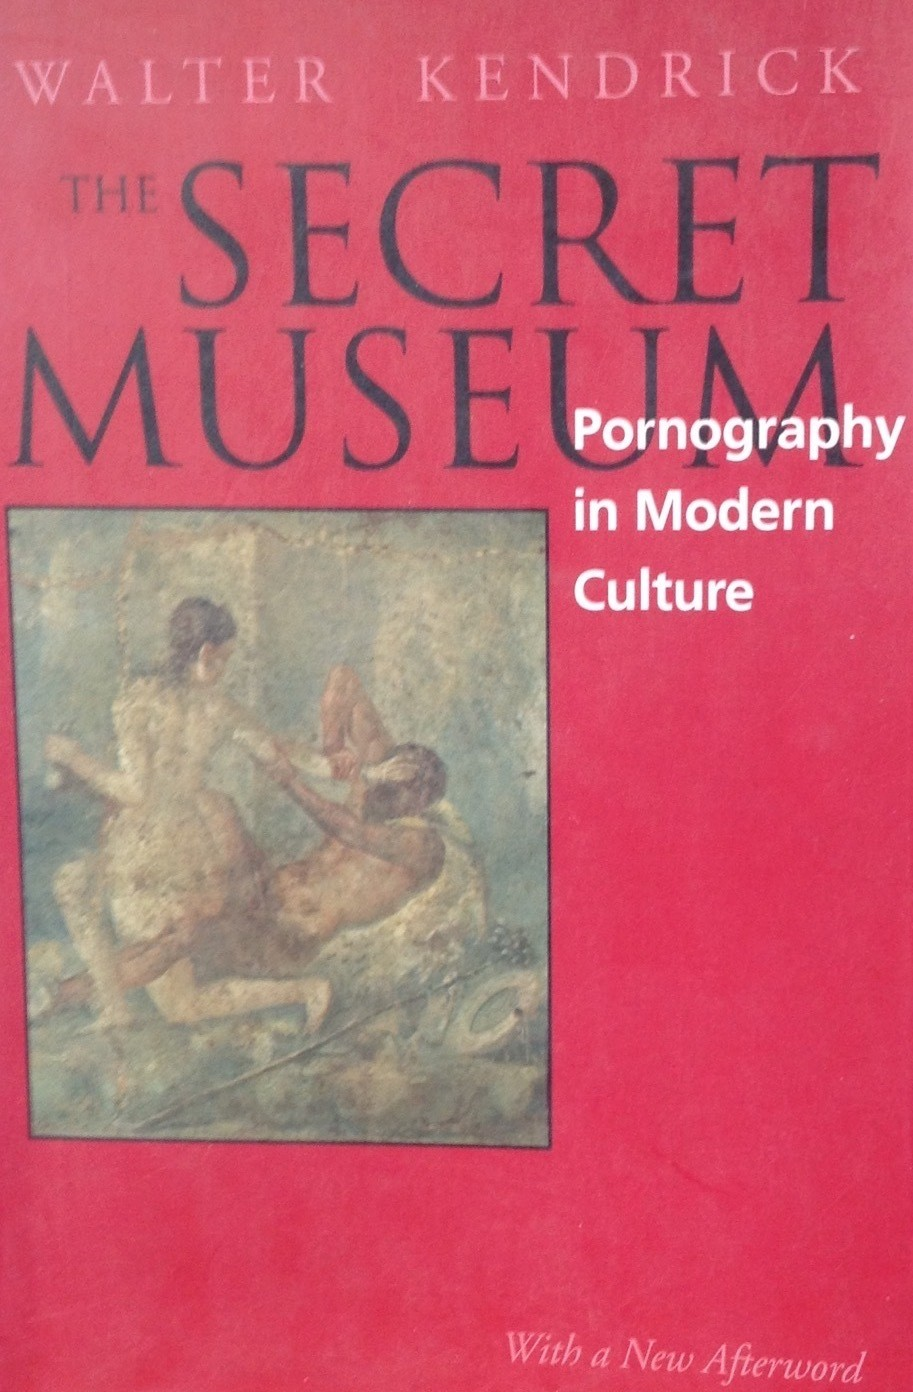 Walter Kendrick, Pornography in Modern culture. The Secret museum